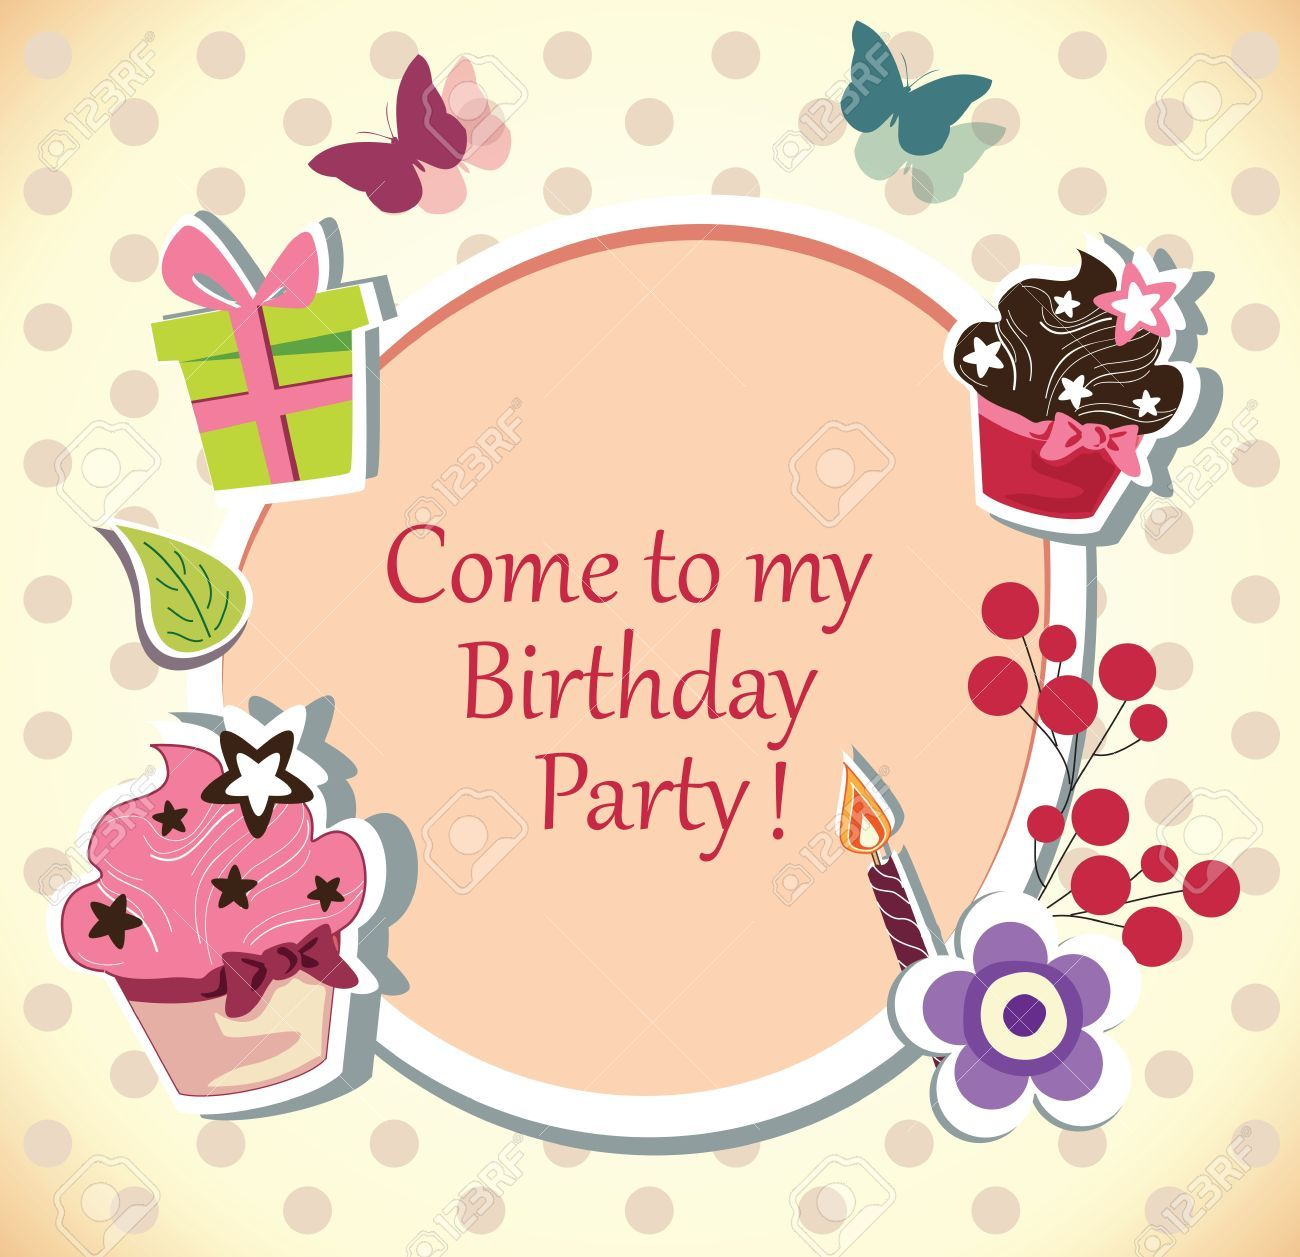 Free party invitation clipart graphic freeuse Free birthday party invitation clipart 3 » Clipart Portal graphic freeuse